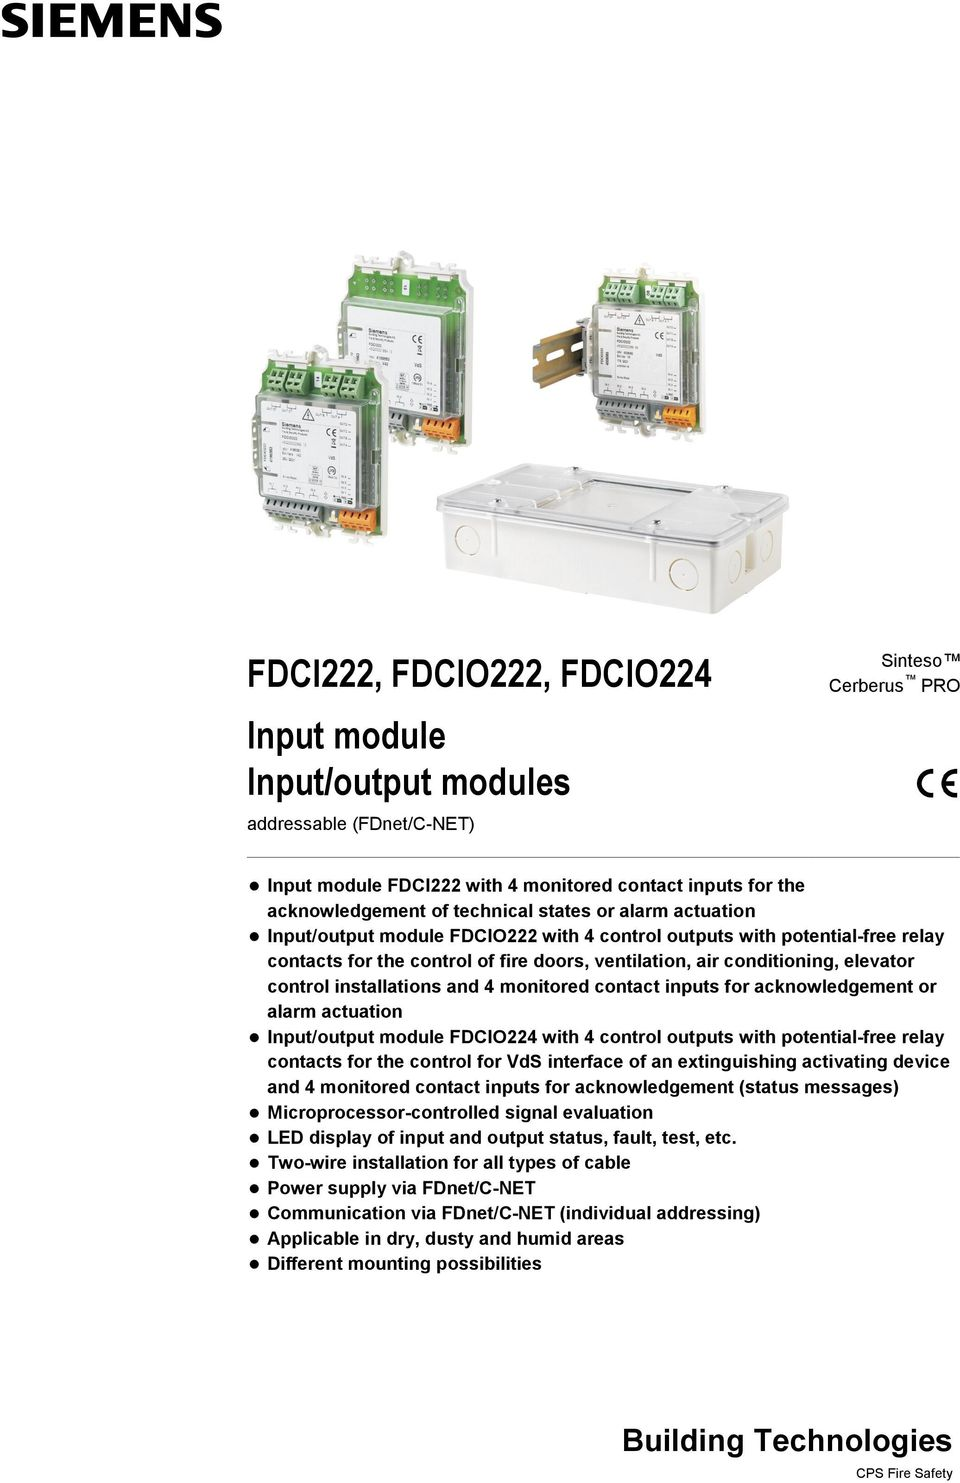 installations and 4 monitored contact inputs for acknowledgement or alarm actuation Input/output module FDCIO224 with 4 control outputs with potential-free relay contacts for the control for VdS